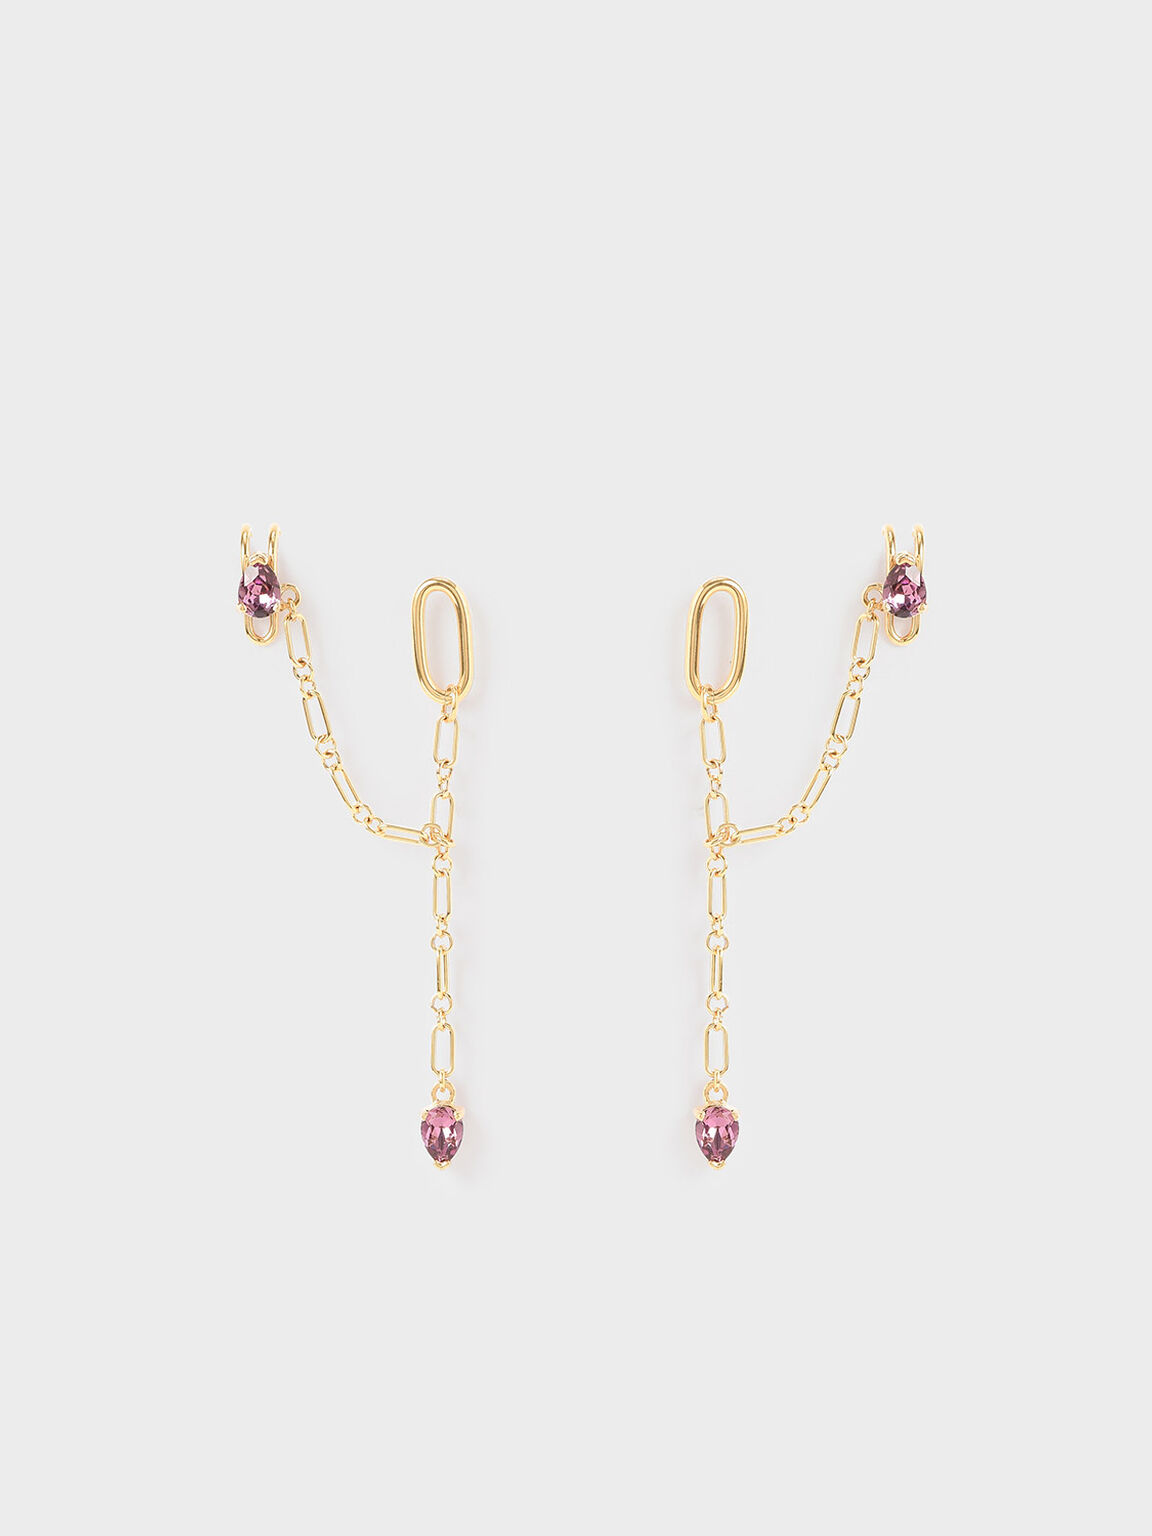 Crystal Embellished Ear Cuff Drop Earrings, Gold, hi-res